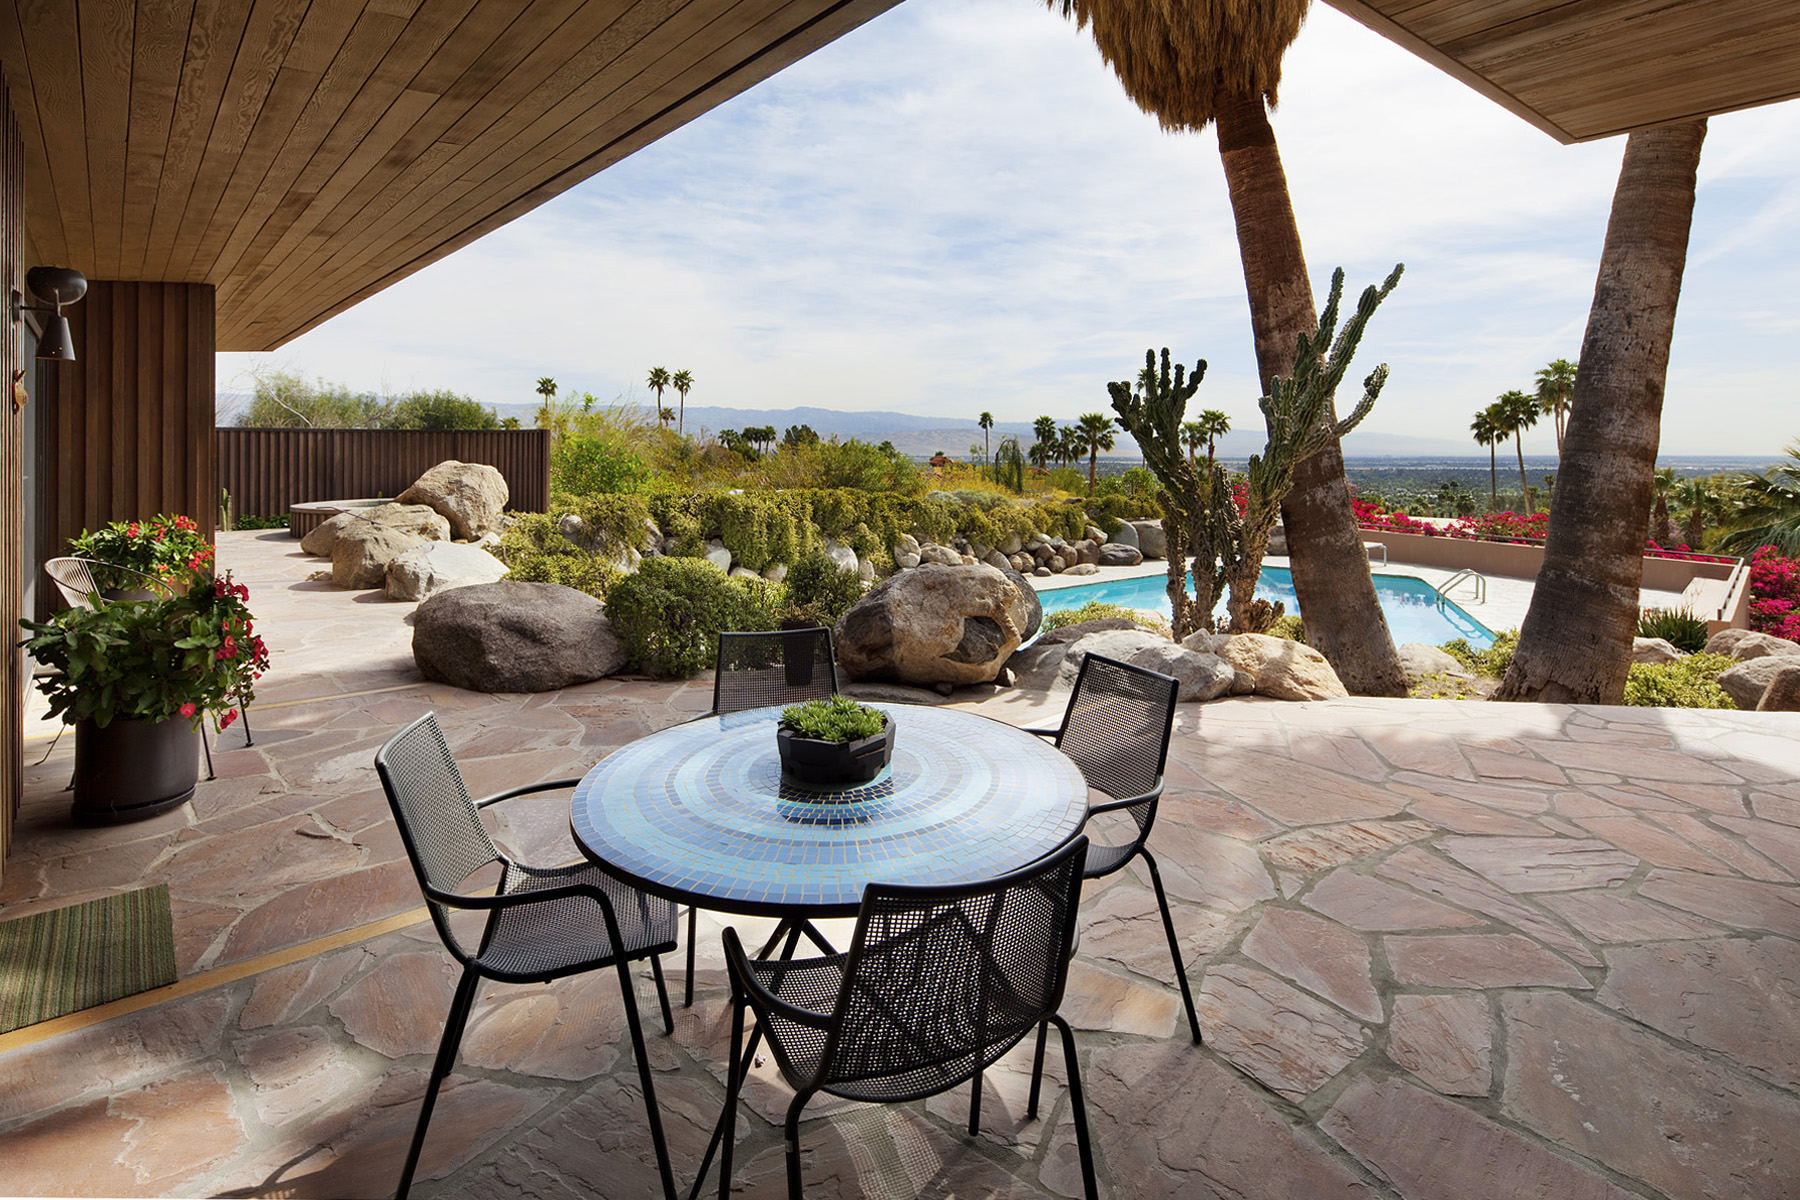 Edris House exterior patio, Palm Springs. Janie Fitzgerald Los Angeles architectural photography.